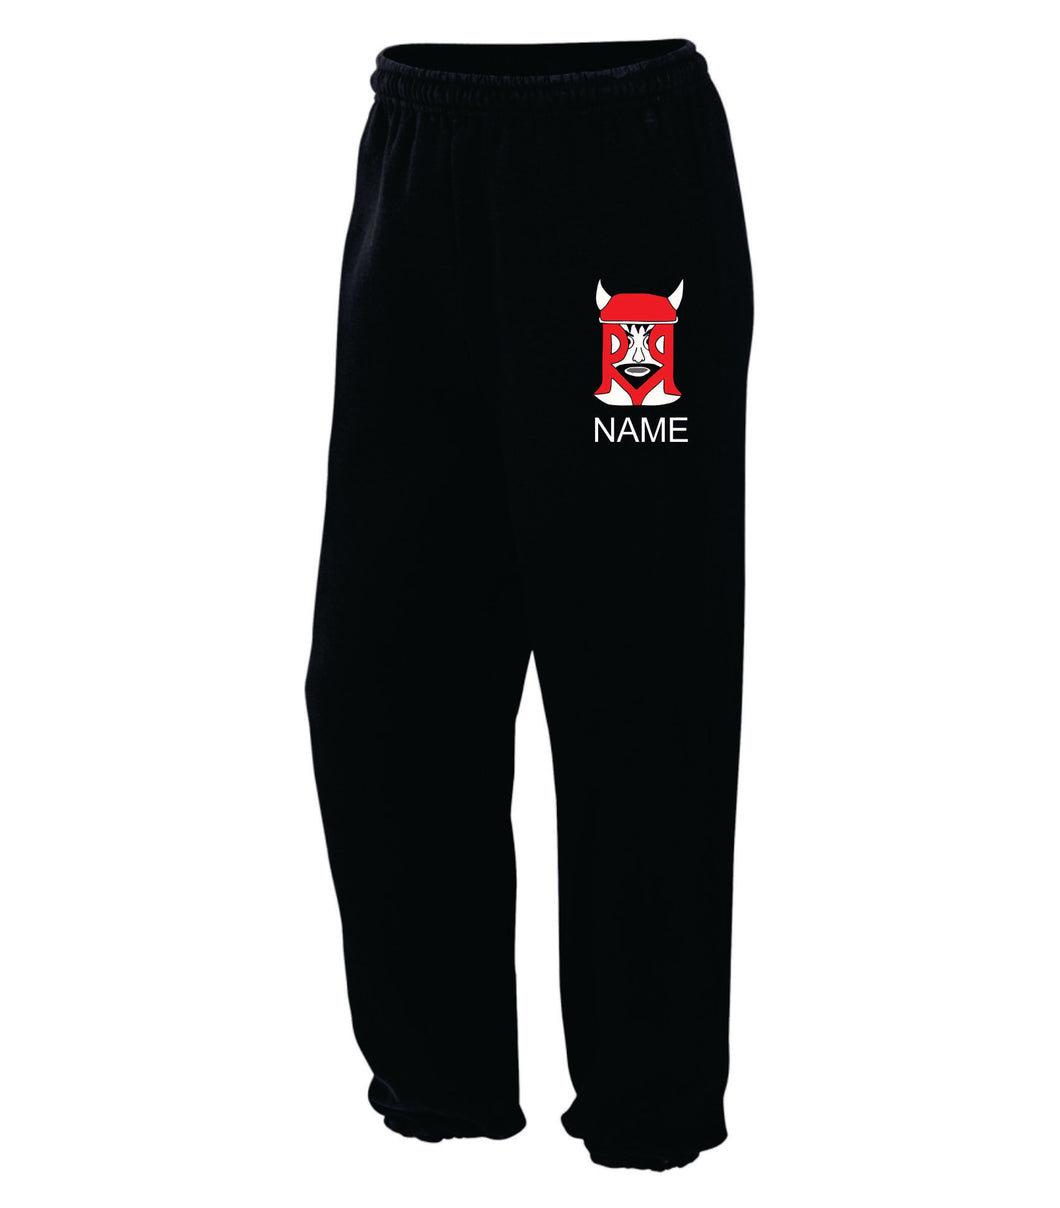 Youth Closed Bottom Sweatpants